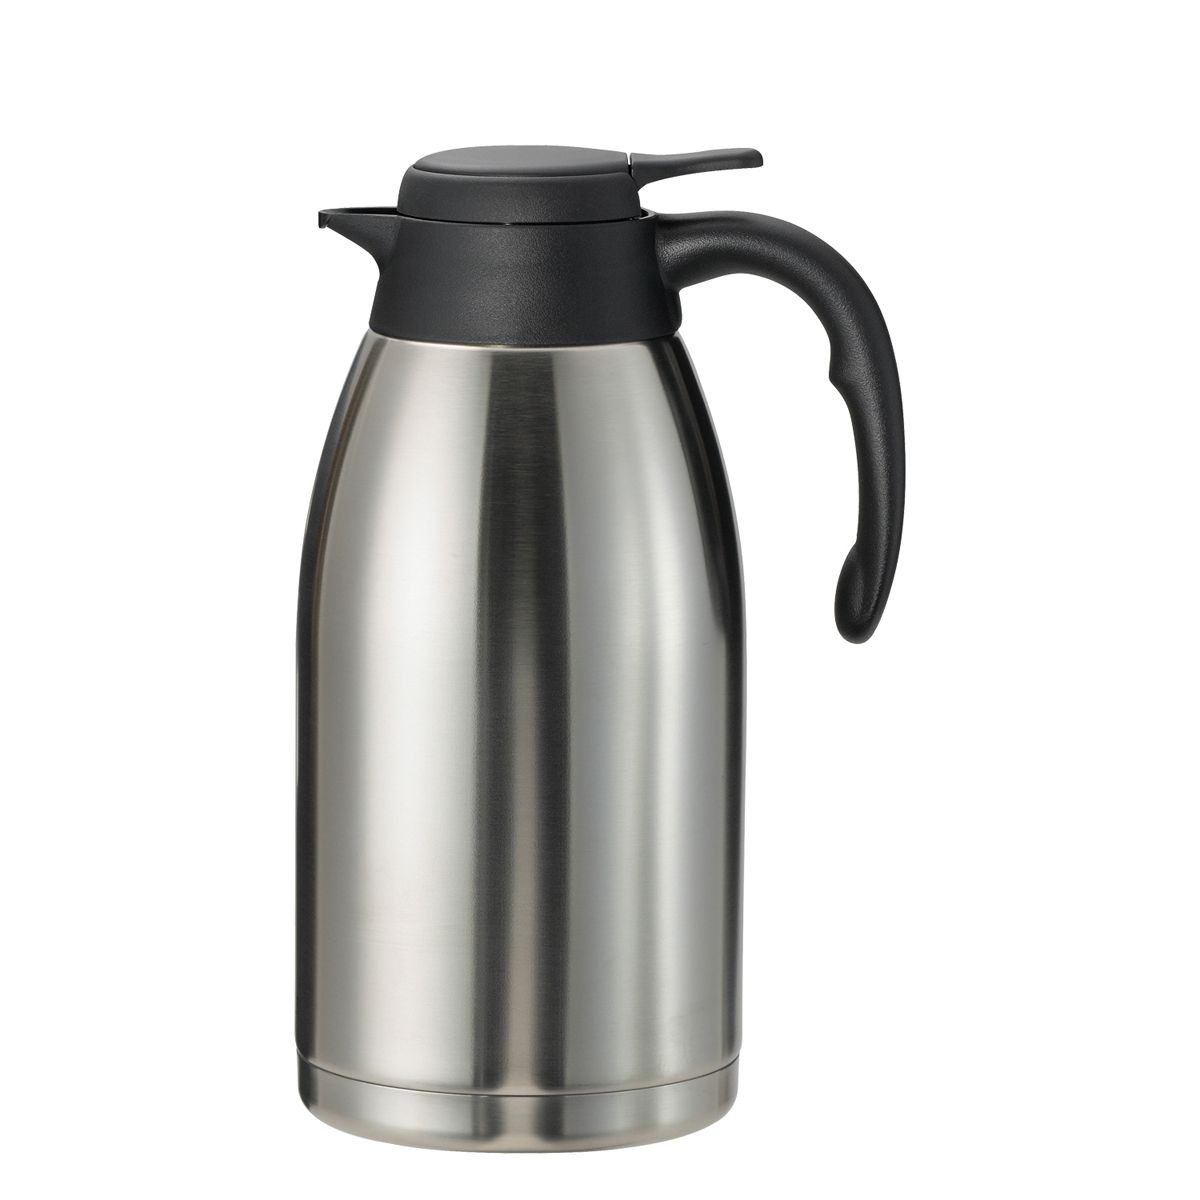 Service Ideas PWLA201 Steelvac Brushed Stainless Server, 2 Liter (68 oz.)